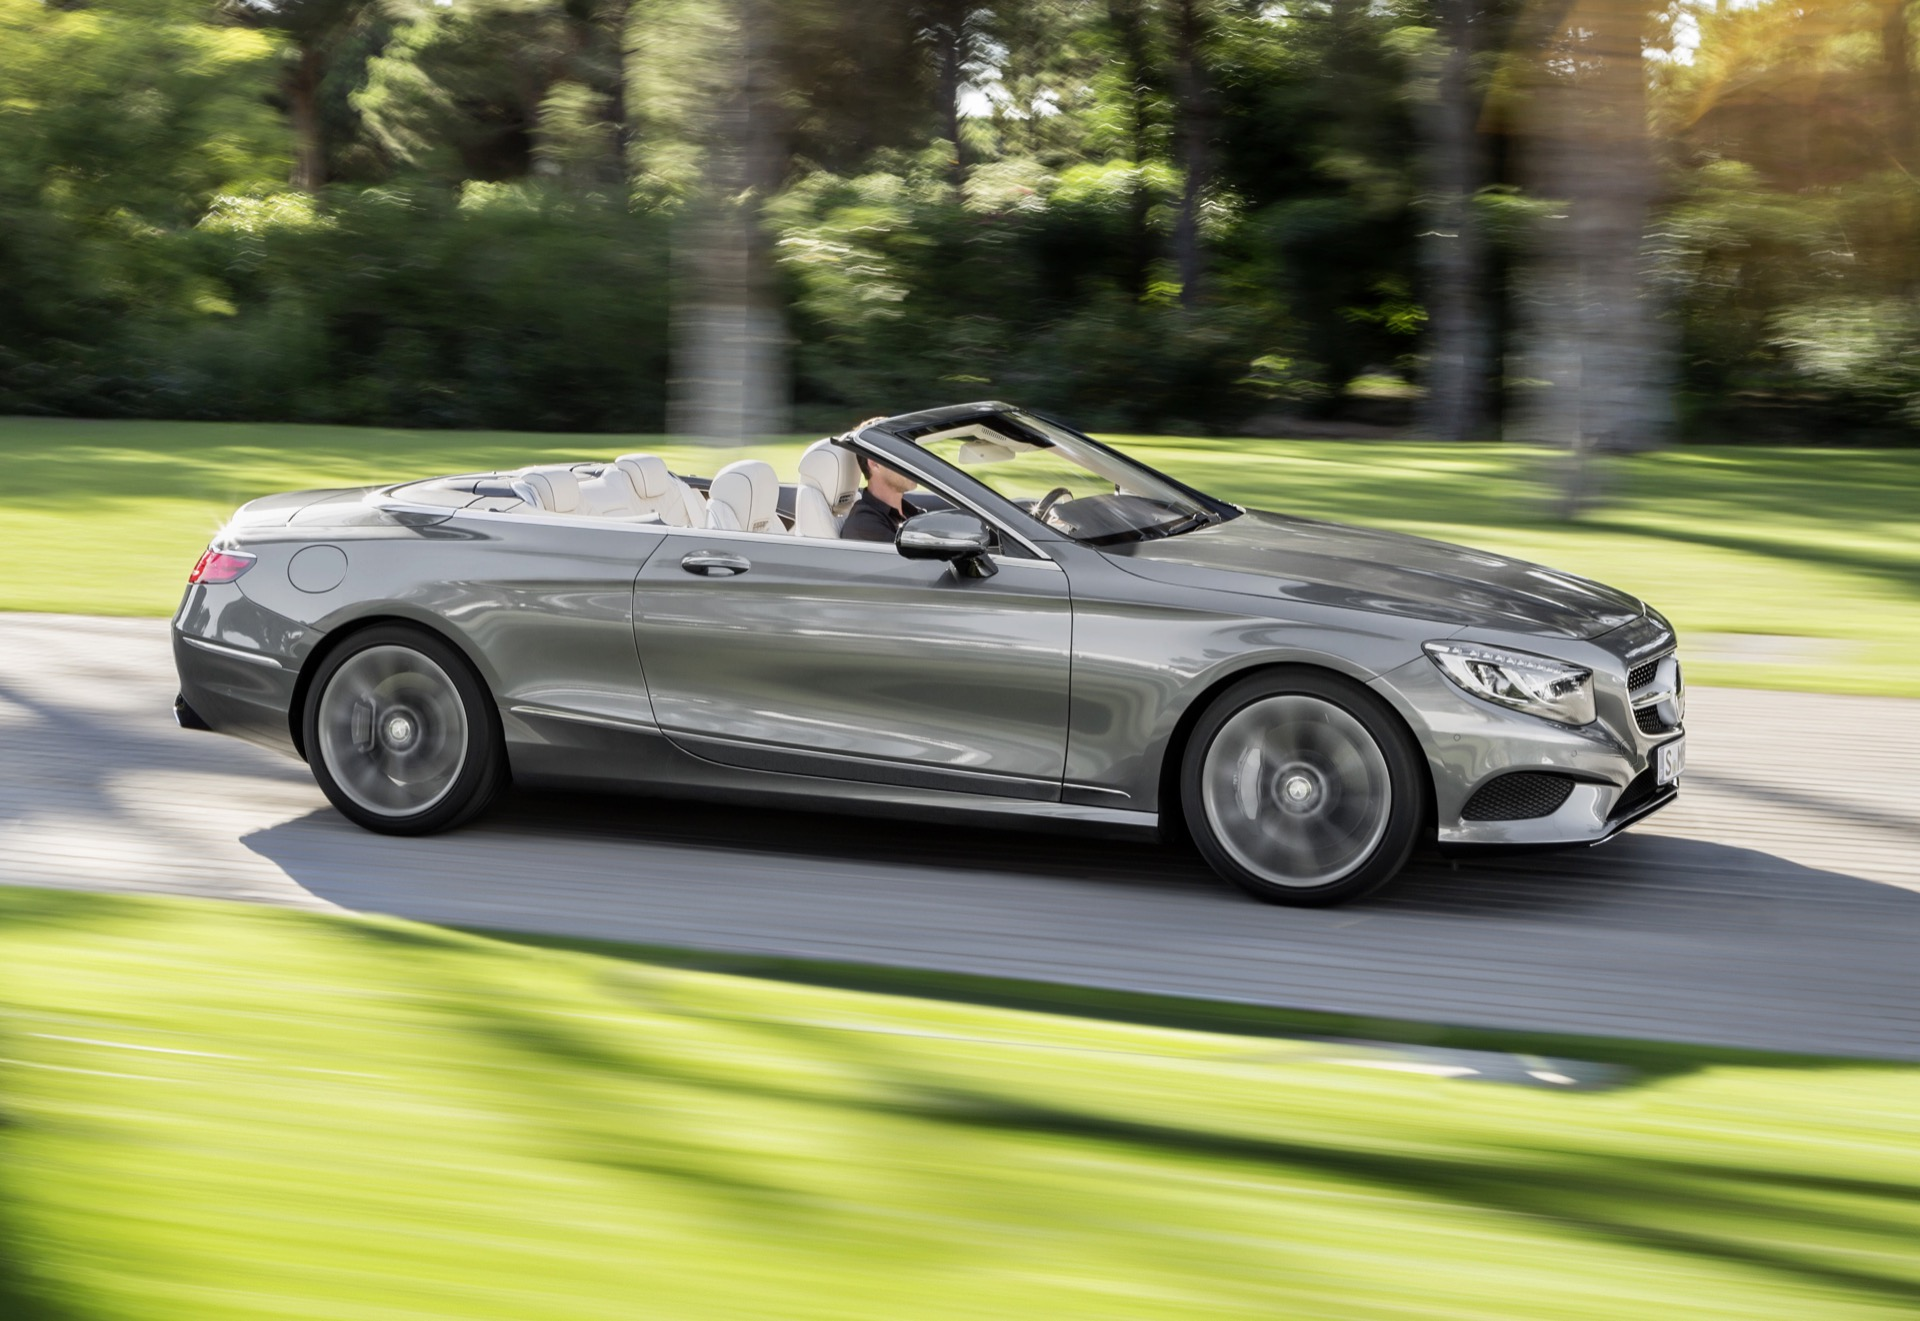 2017 mercedes benz s class cabriolet preview page 2 for Mercedes benz cabriolet 2017